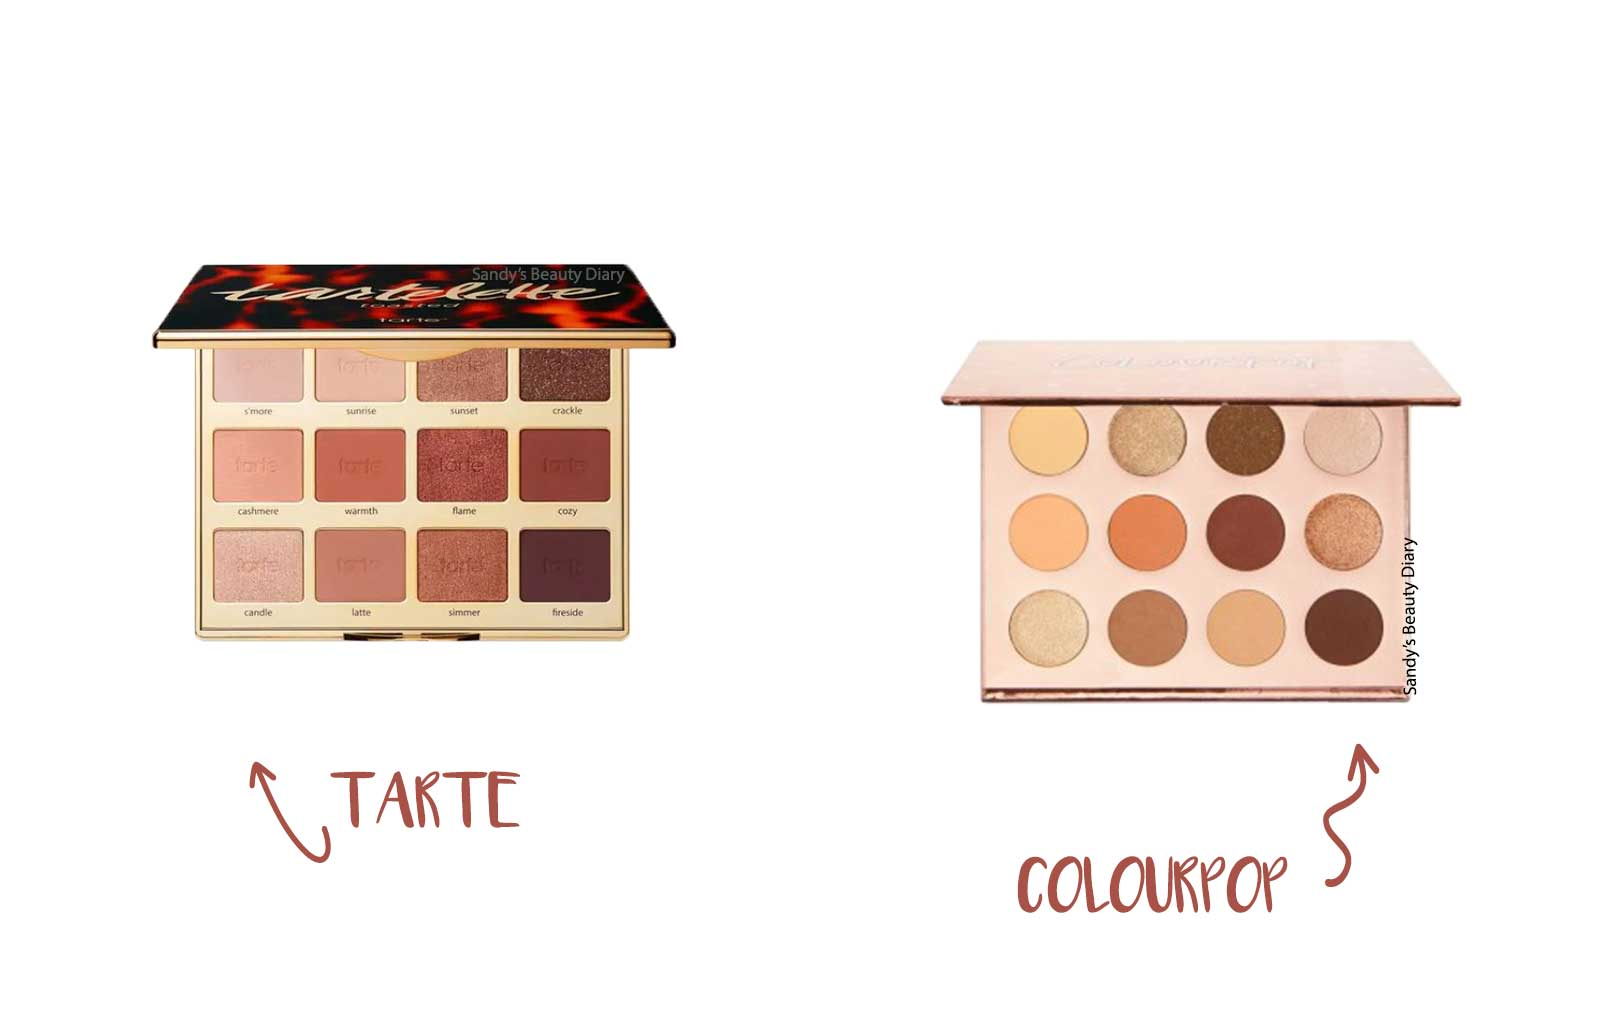 Dupes maquillage tarte tartelette toasted